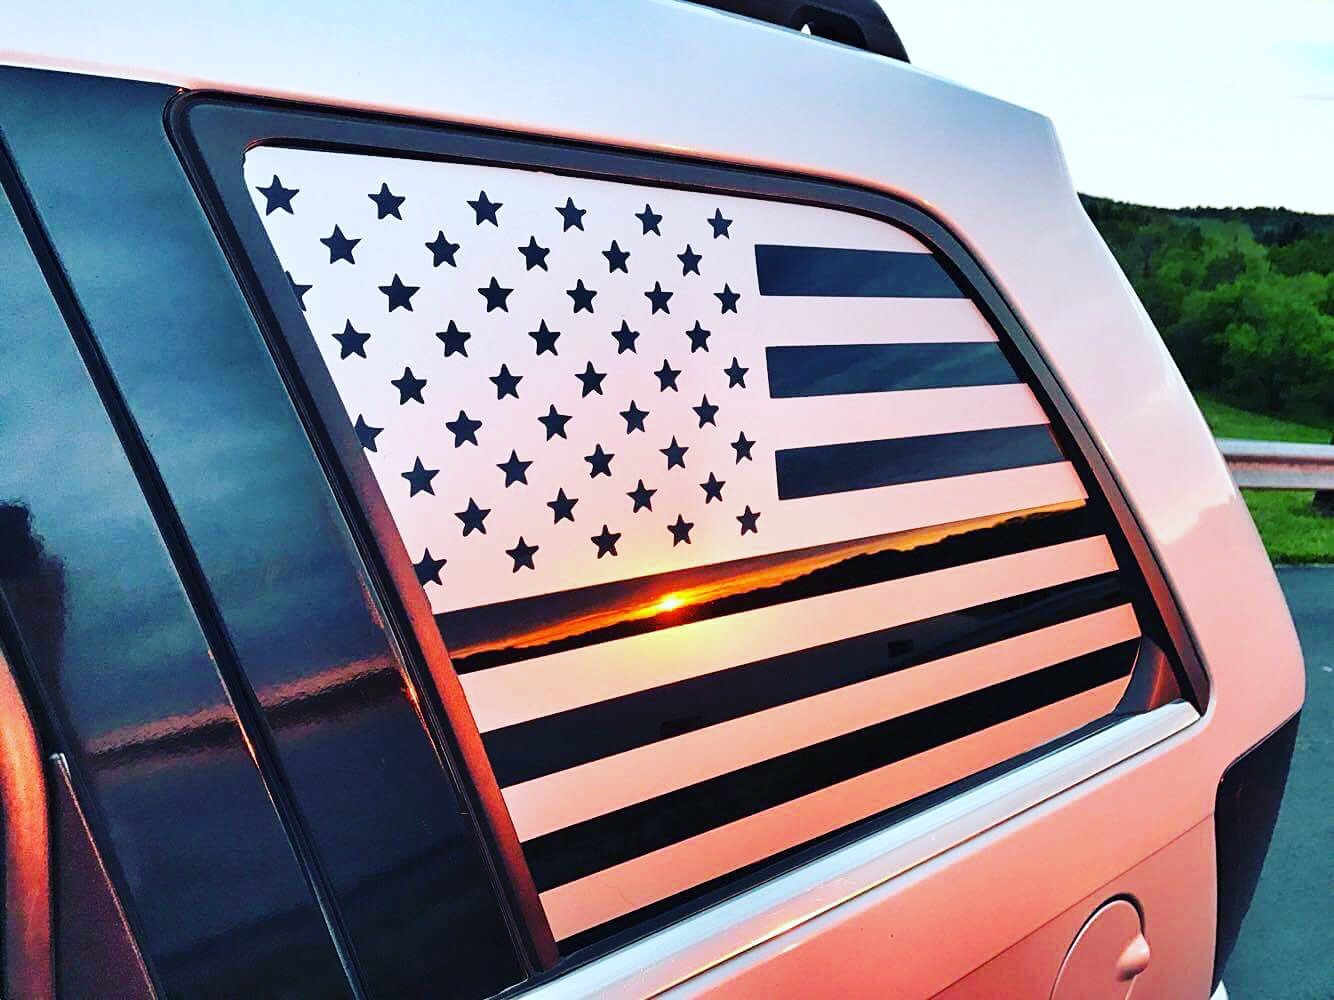 Custom Jeep Quarter Window Decals American Flag Decals In Silver By Chris2low Vinyl 60 American Flag Decal Window Decals Flag Decal